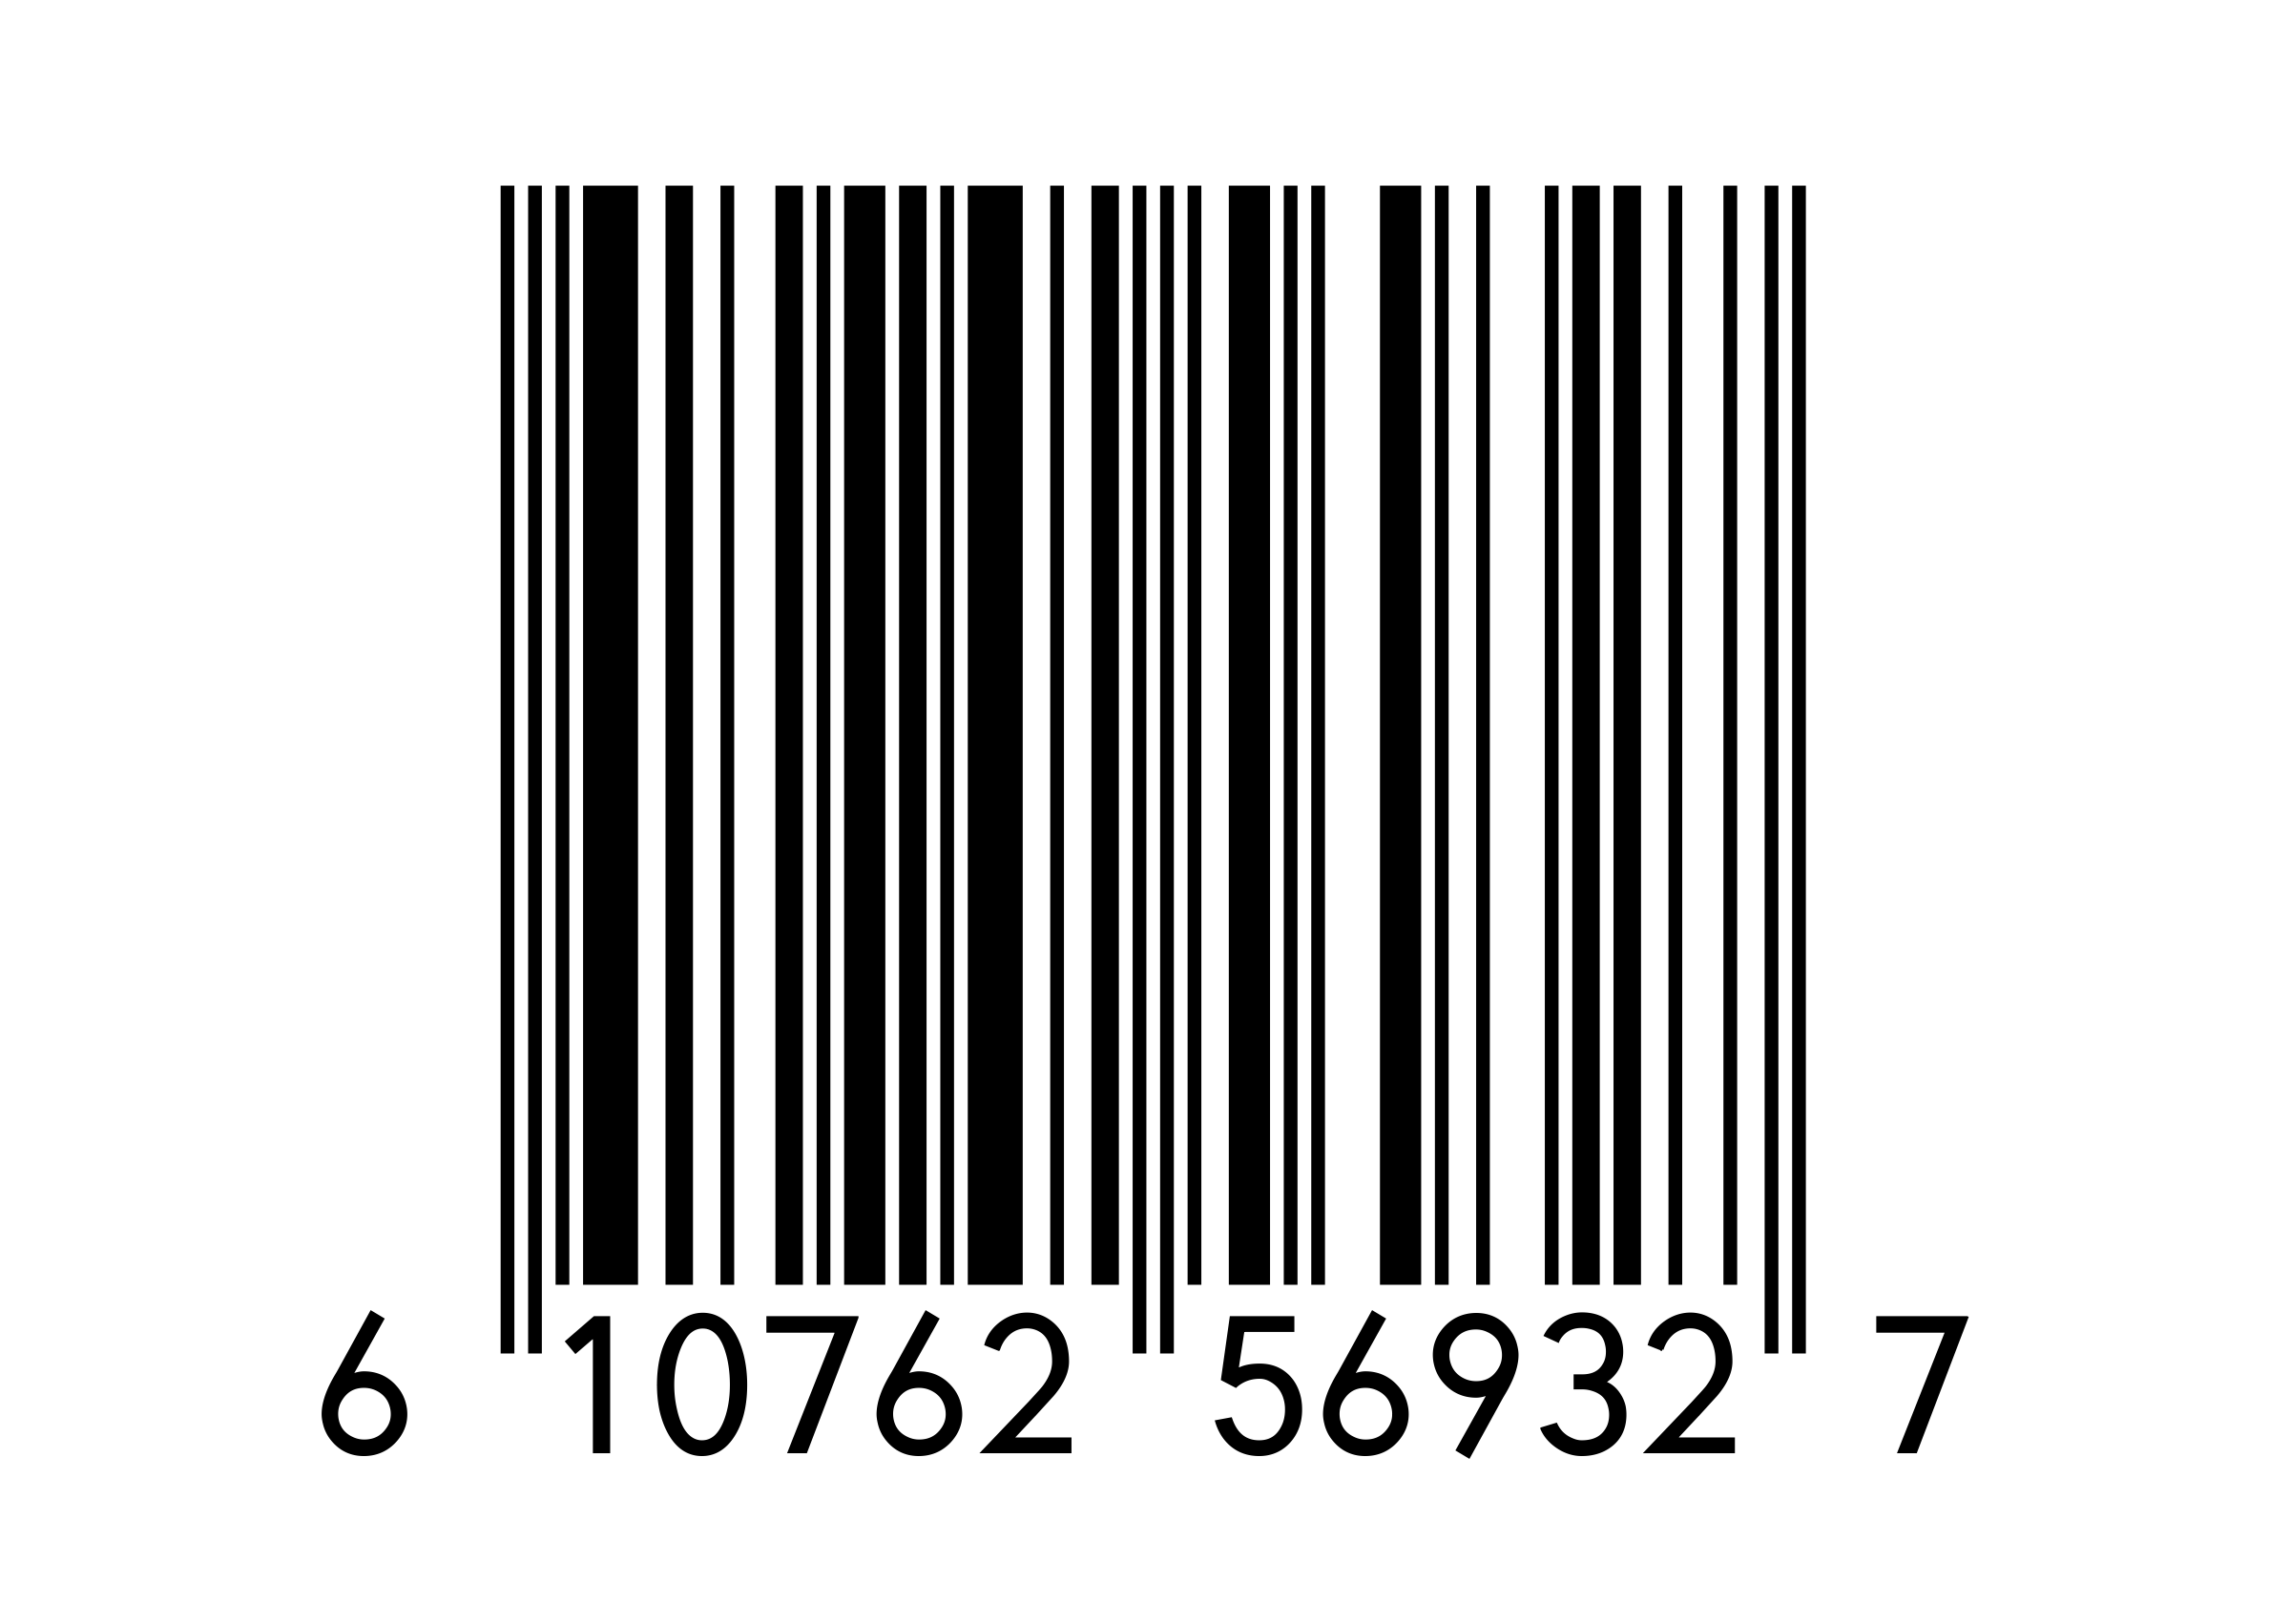 Bar Code By Mazeo A Upc Bar Code On A White Background On Openclipart Coding Barcode Generator Code Art